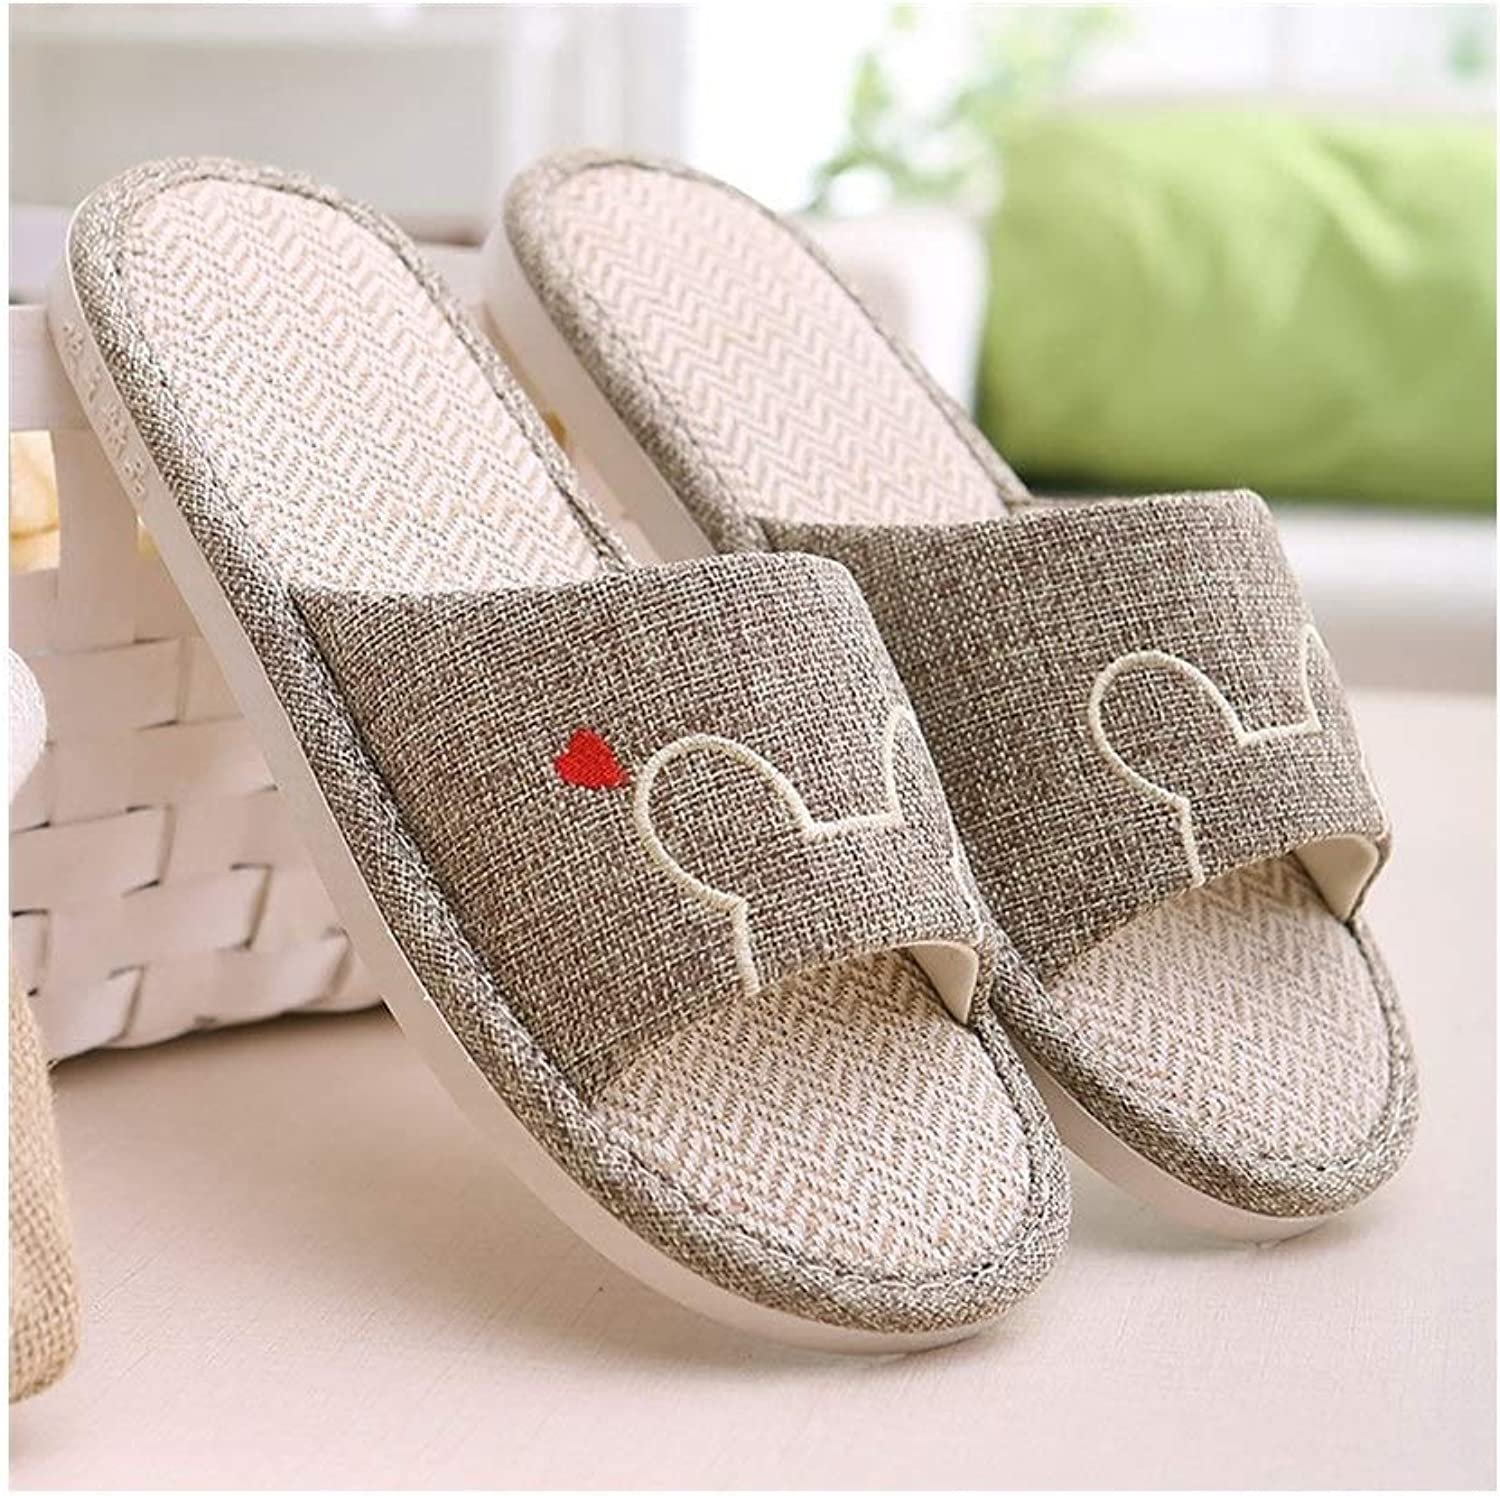 DYFYMX Open Slippers, Spring and Autumn Seasons Indoor Non-Slip Couple Models Carpet Slippers, Ladies, Men. Fashion B, Size   25-25.5cm